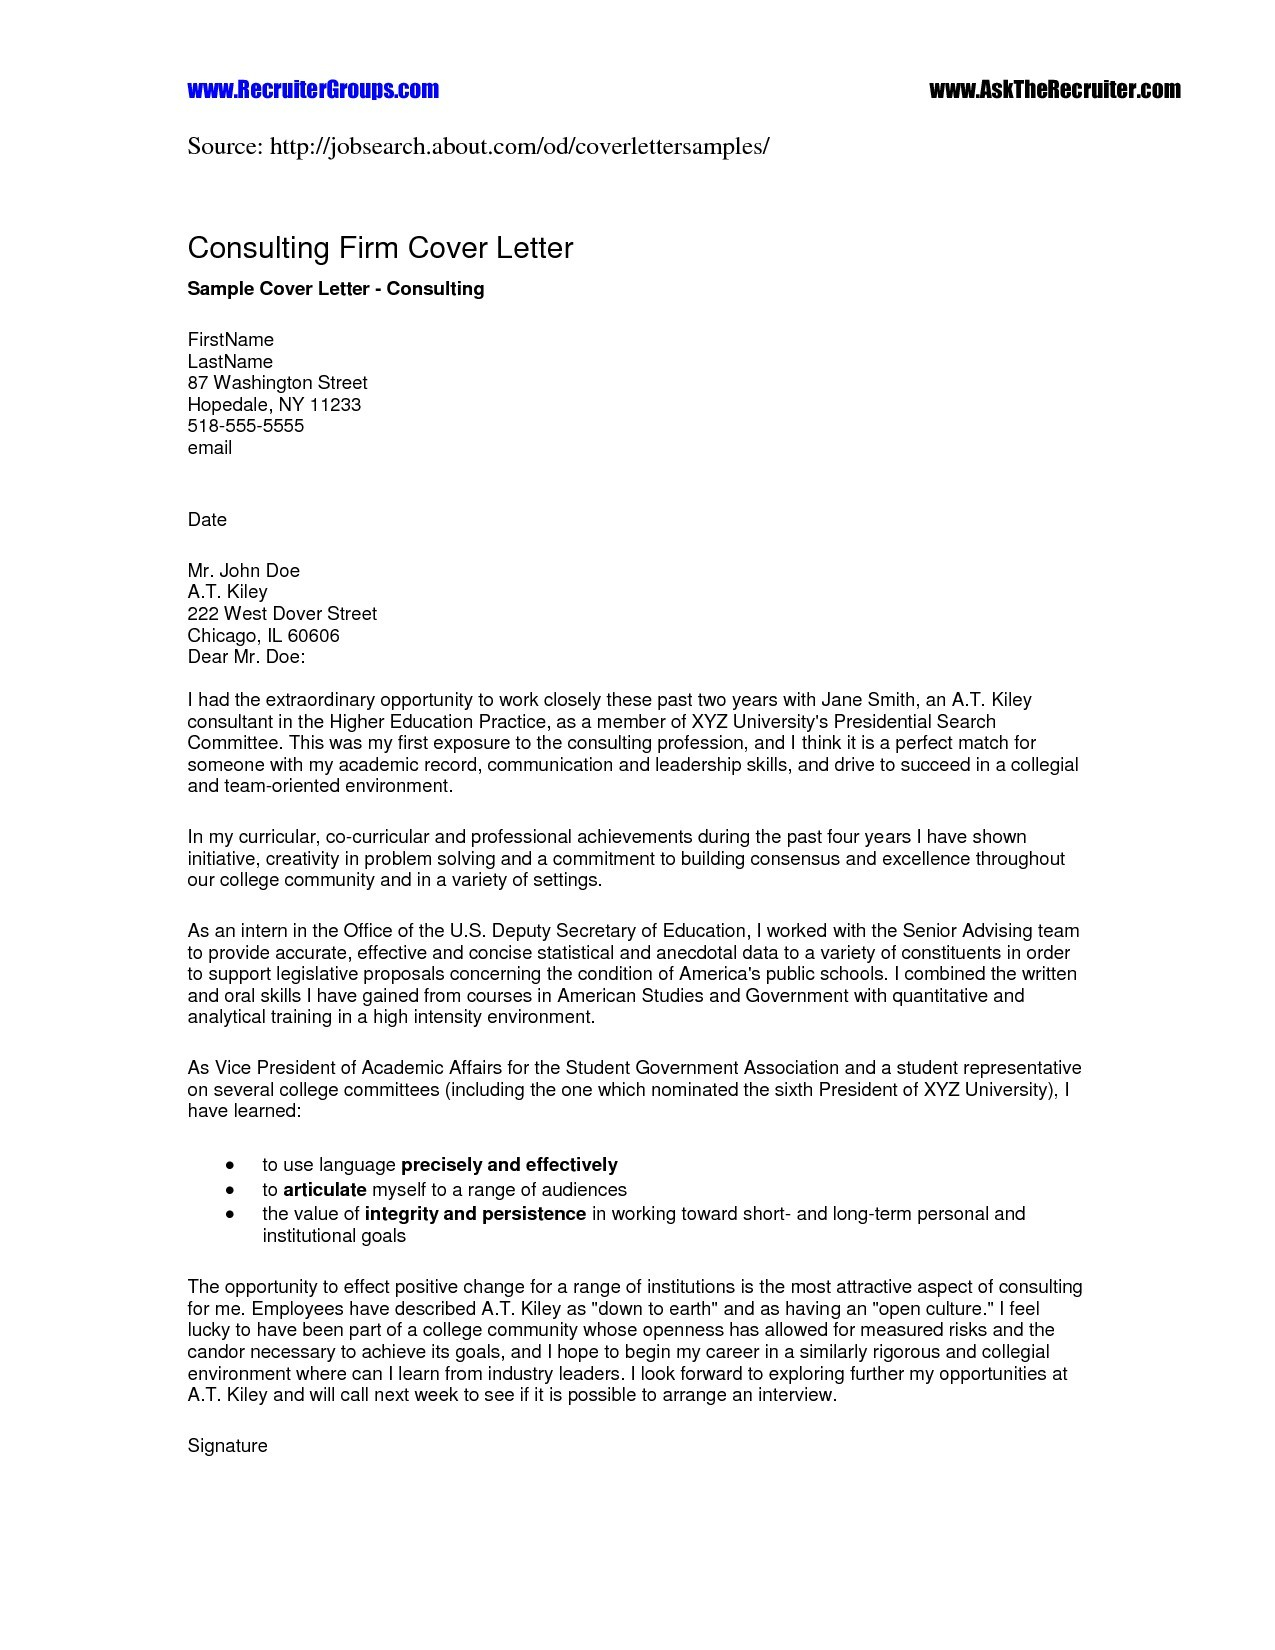 Job Letter Offer Template - Sample Cover Letter for Job Fer Valid Fresh Cover Letter